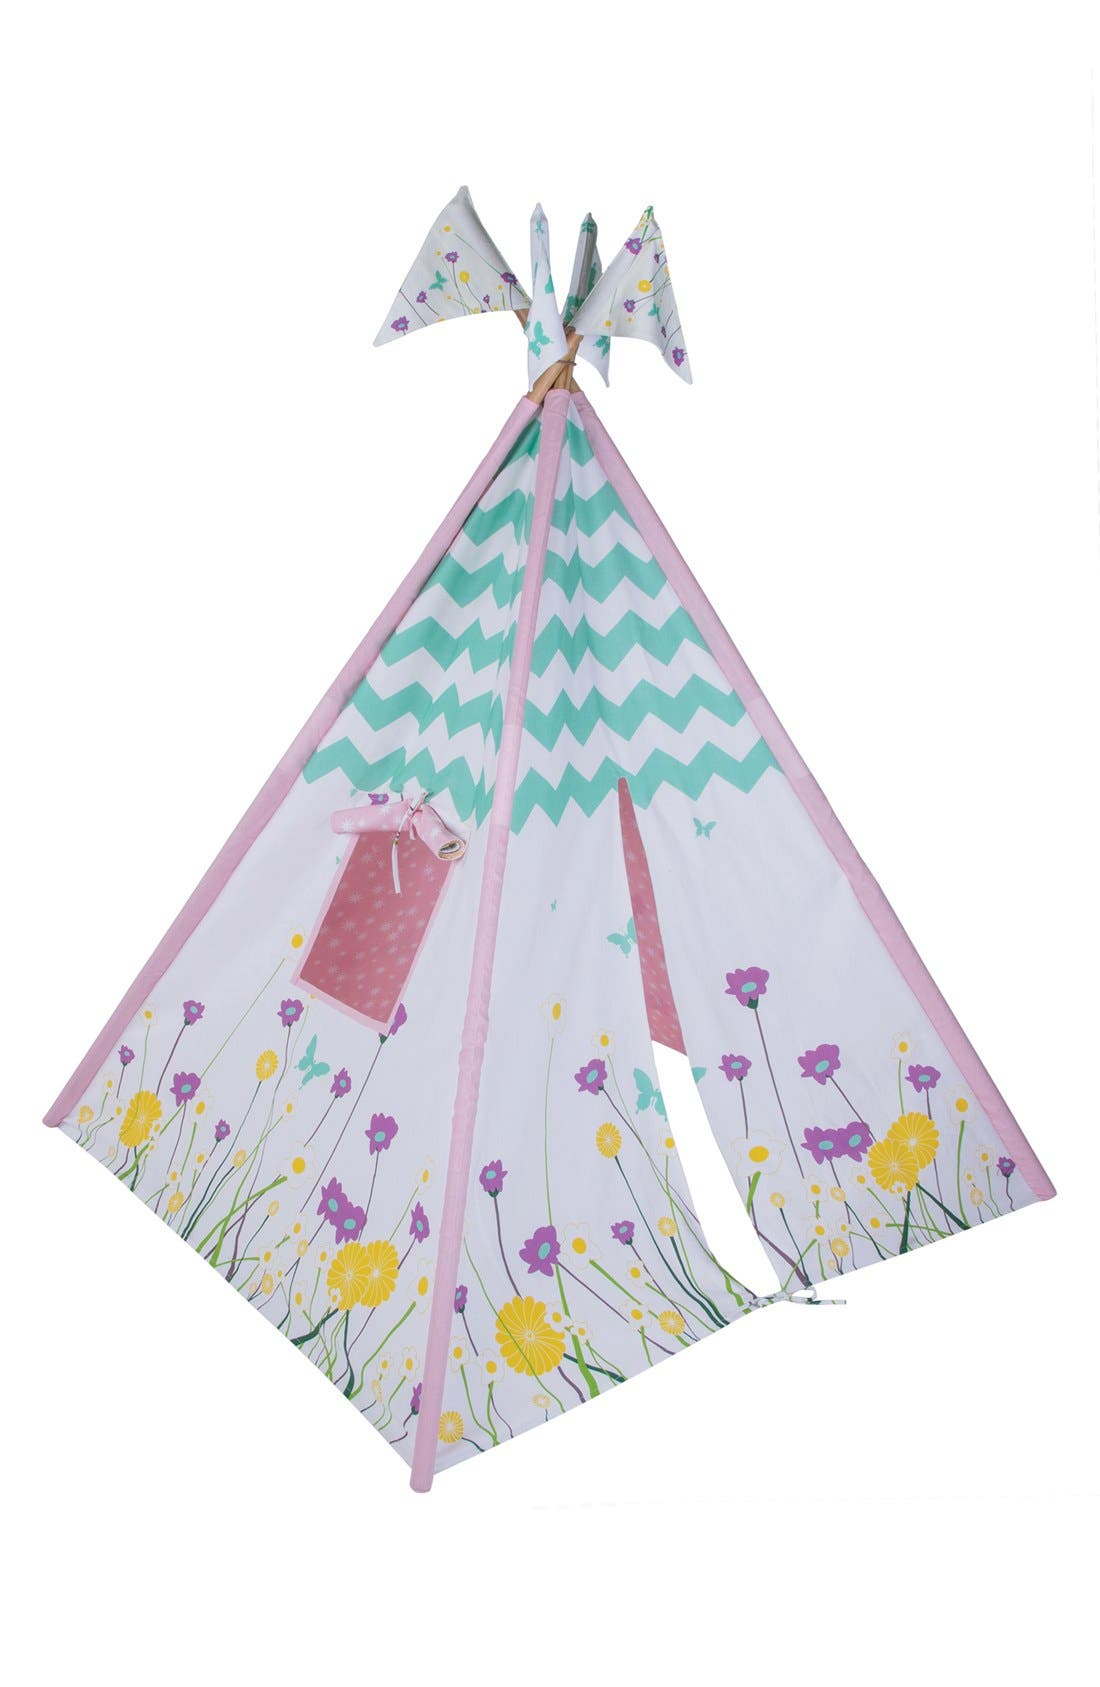 'Wildflowers' Cotton Canvas Teepee,                             Alternate thumbnail 2, color,                             BEIGE